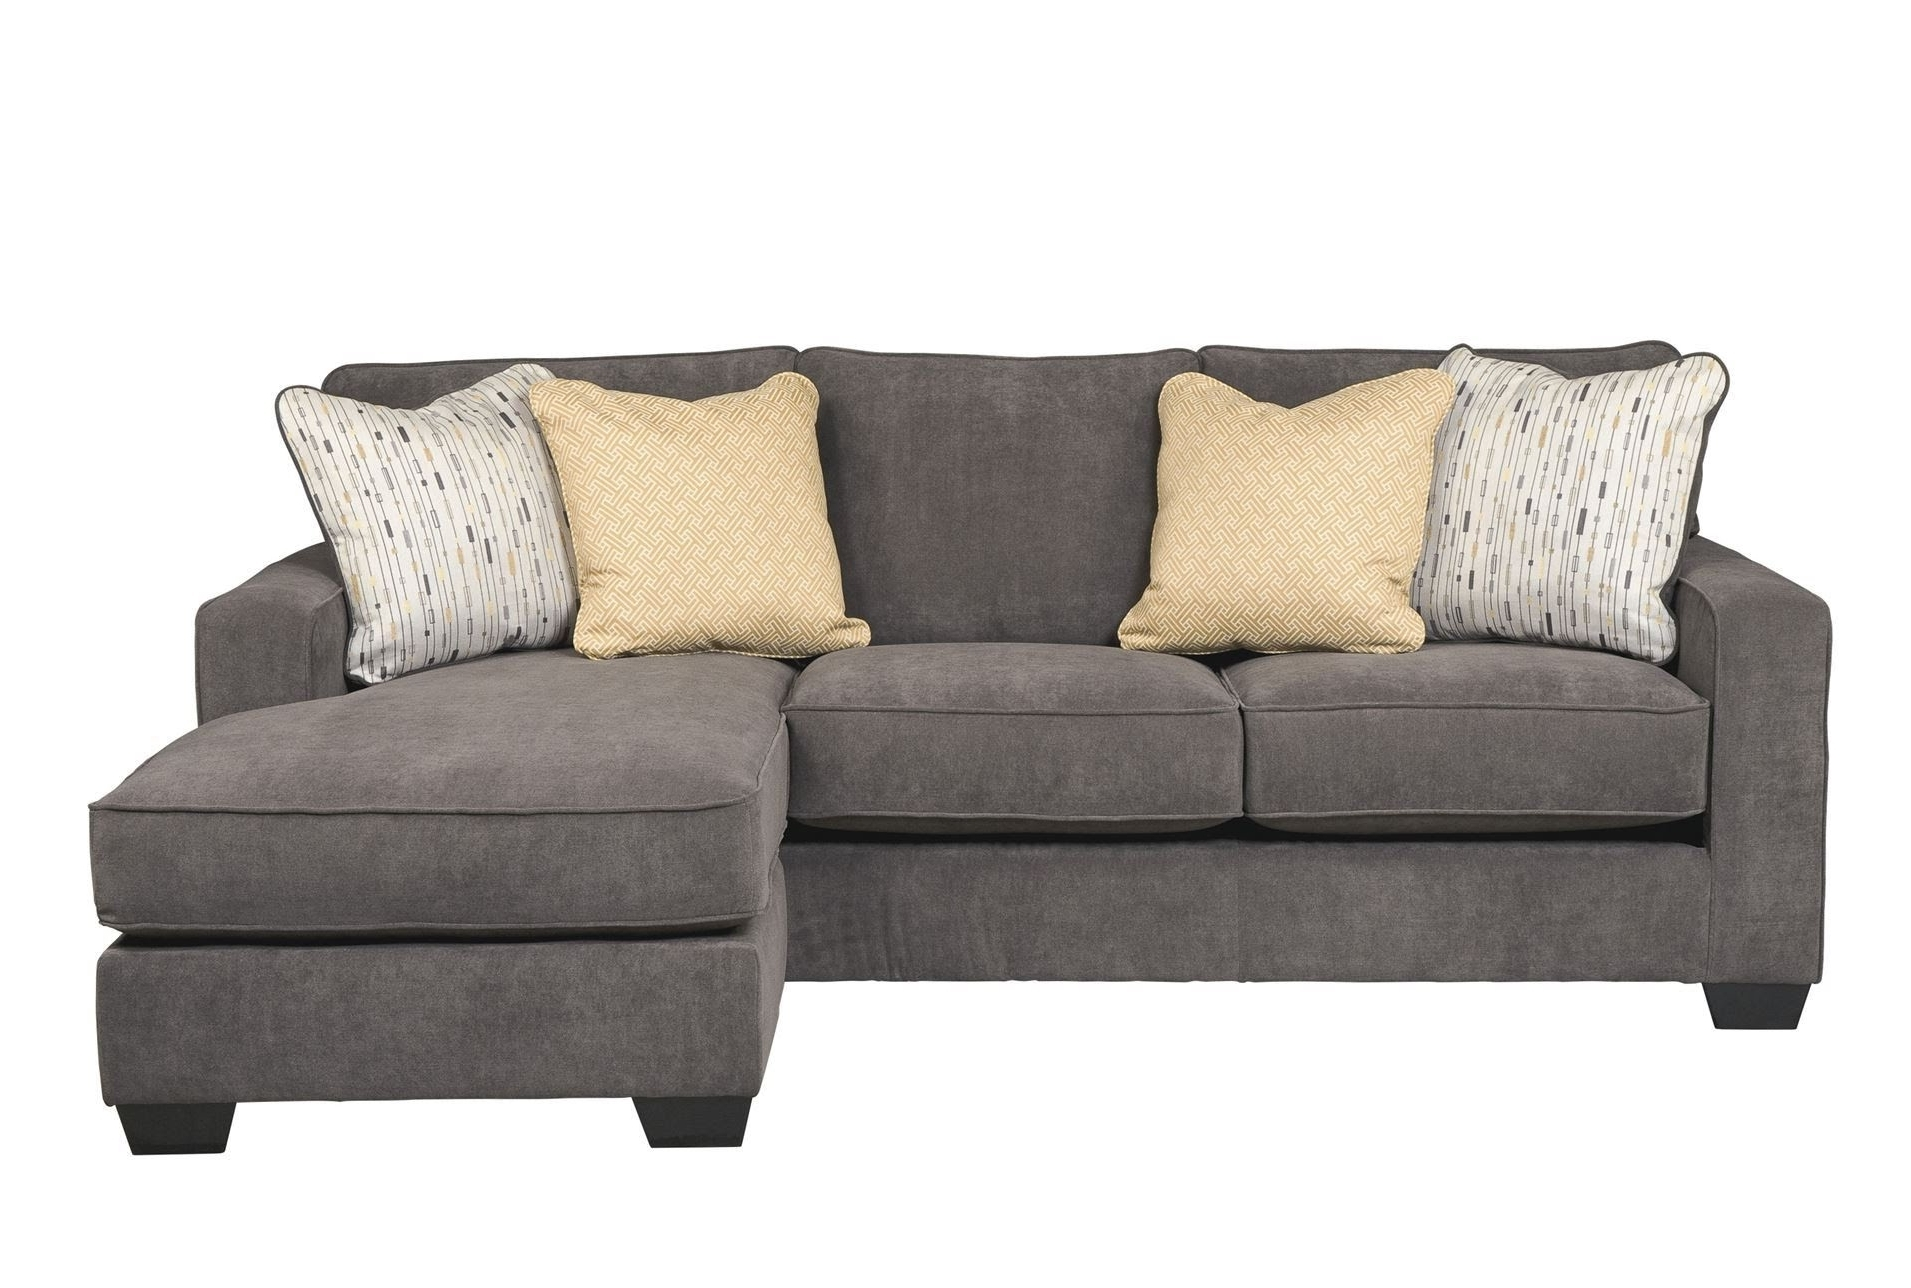 Most Recently Released Interesting Couch With Chaise Lounge Ideas – Youtube With Regard To Couches With Chaise Lounge (View 1 of 15)